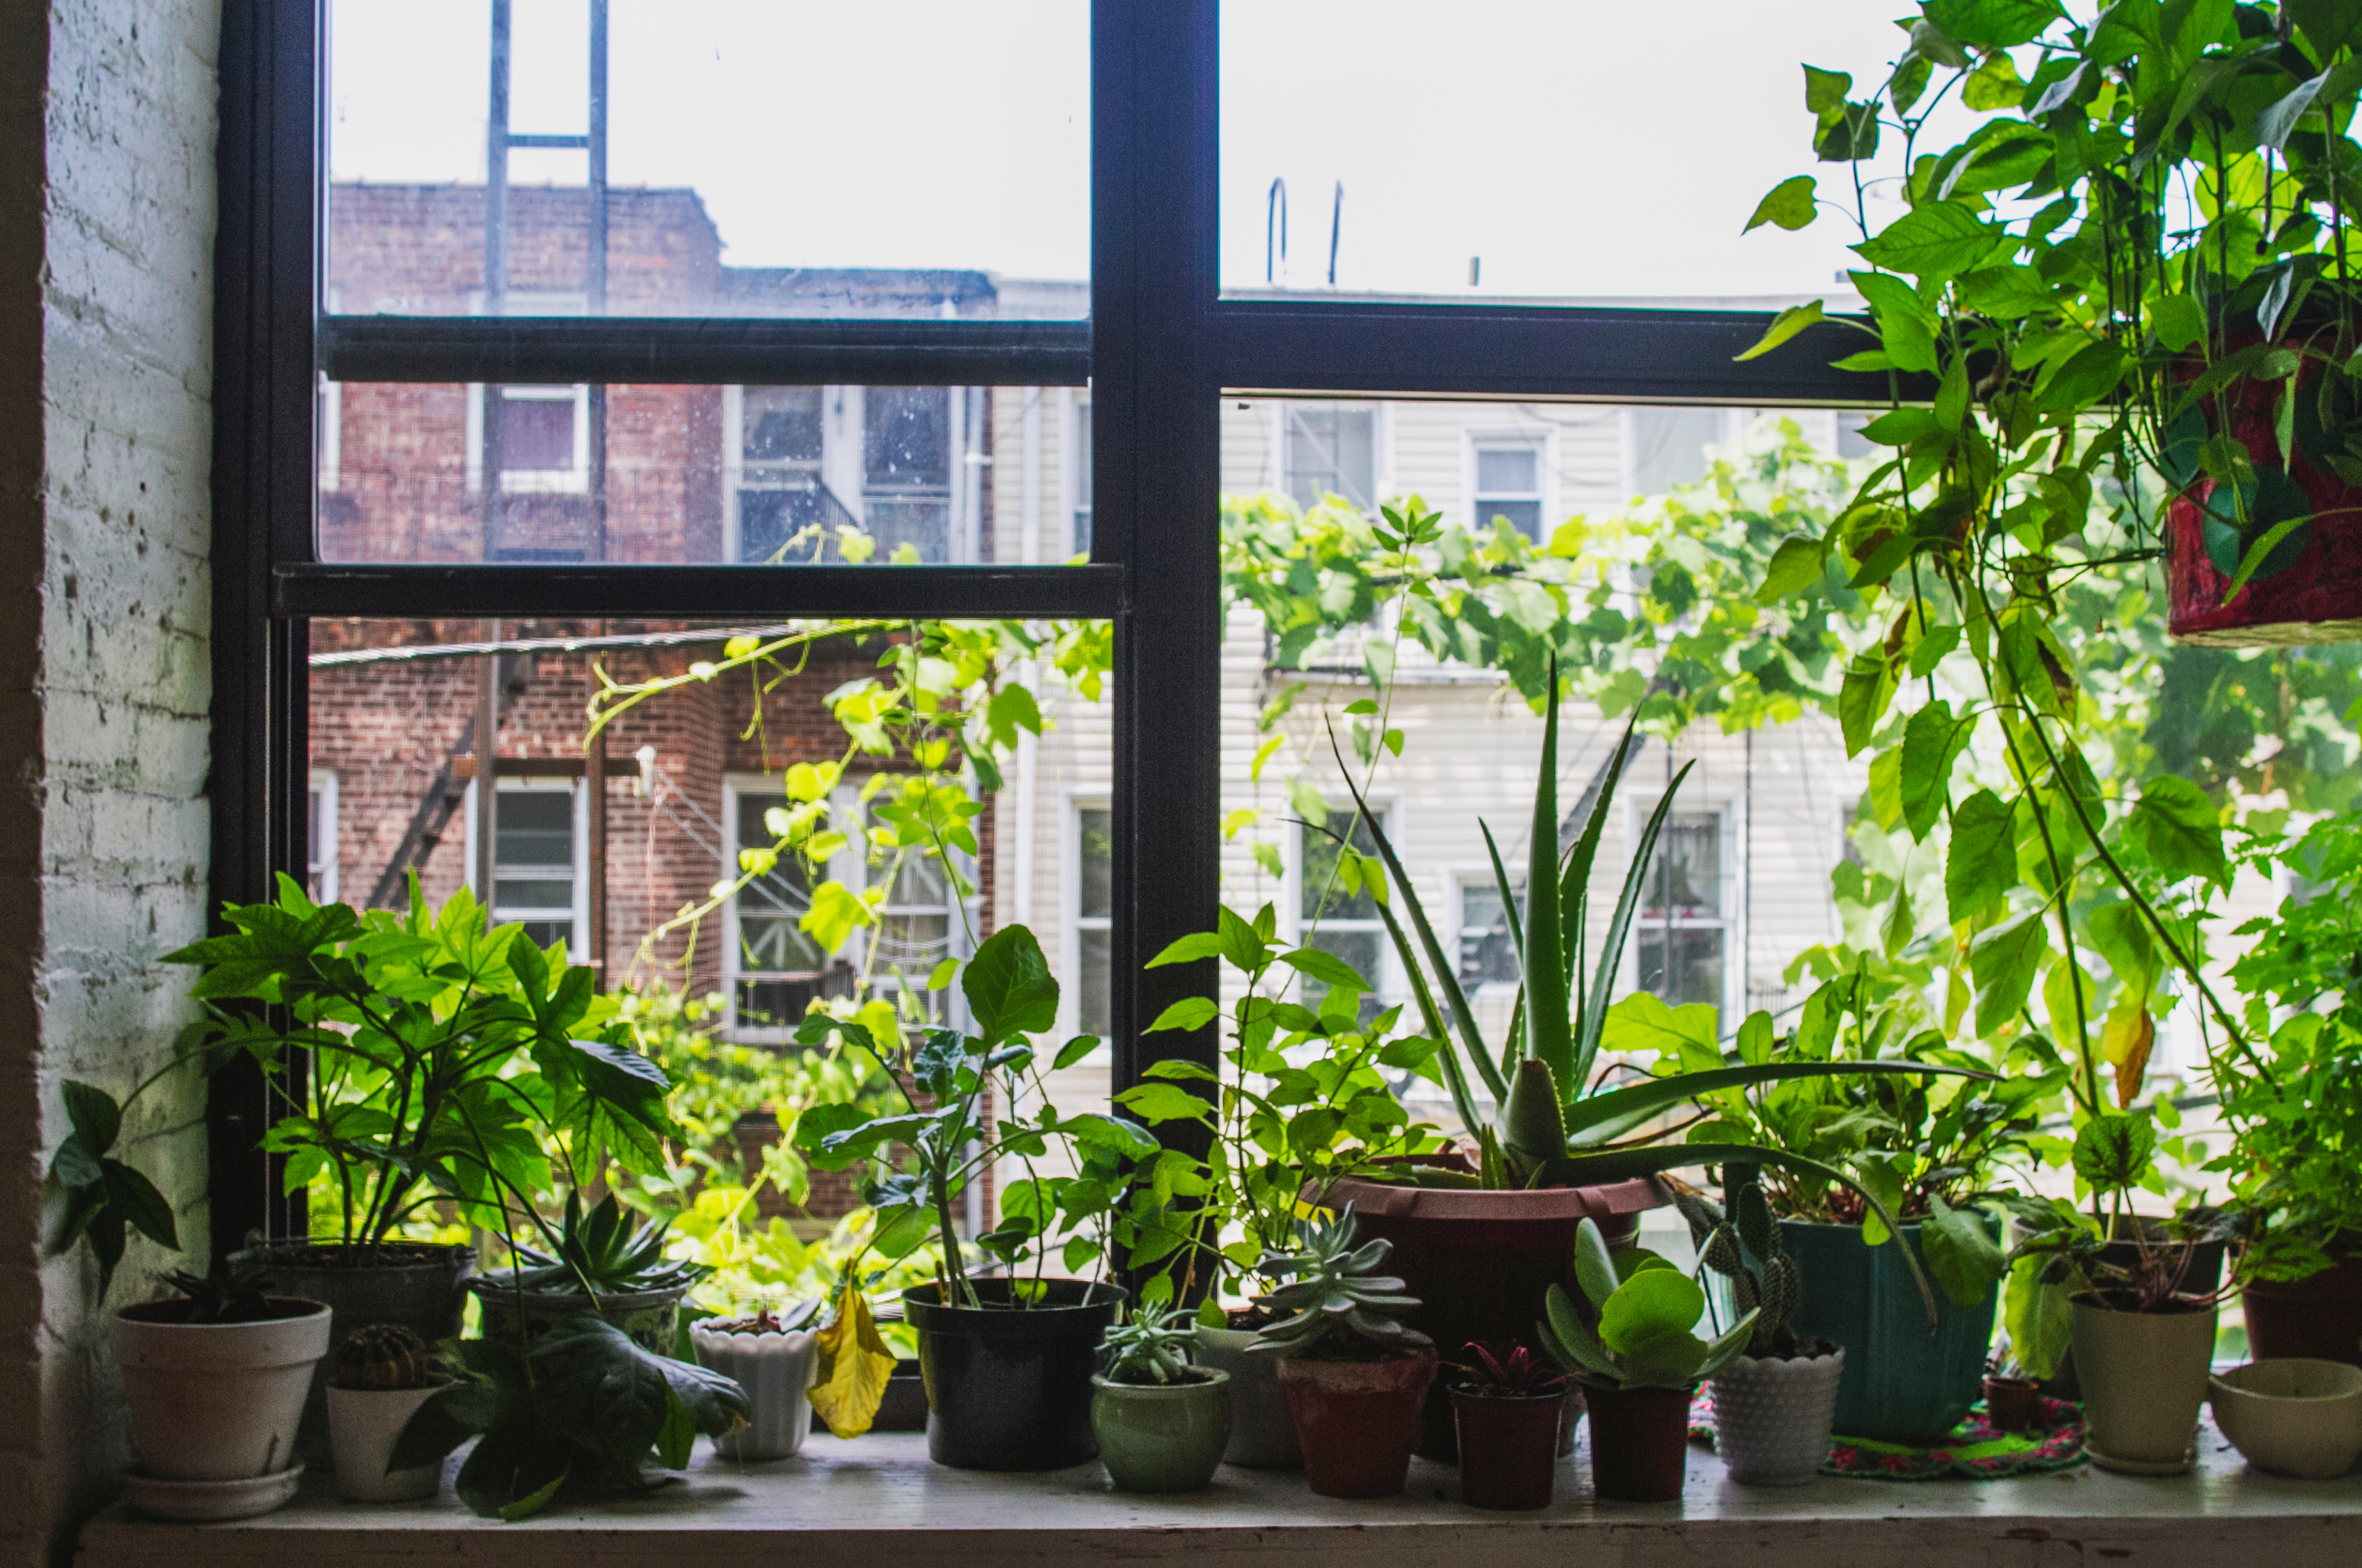 How to Care for Dracaena House Plants | Home Guides | SF Gate Grow Light Indoor House Plant Html on indoor orange tree leaf, boston fern care indoor plant light, 3 tier plant stand grow light, indoor plants grow without soil, indoor house plants trees, dracaena house plant low light, indoor plants that can grow in water, indoor houseplants fern, indoor green plants with heart shaped leaves, indoor green plant name,